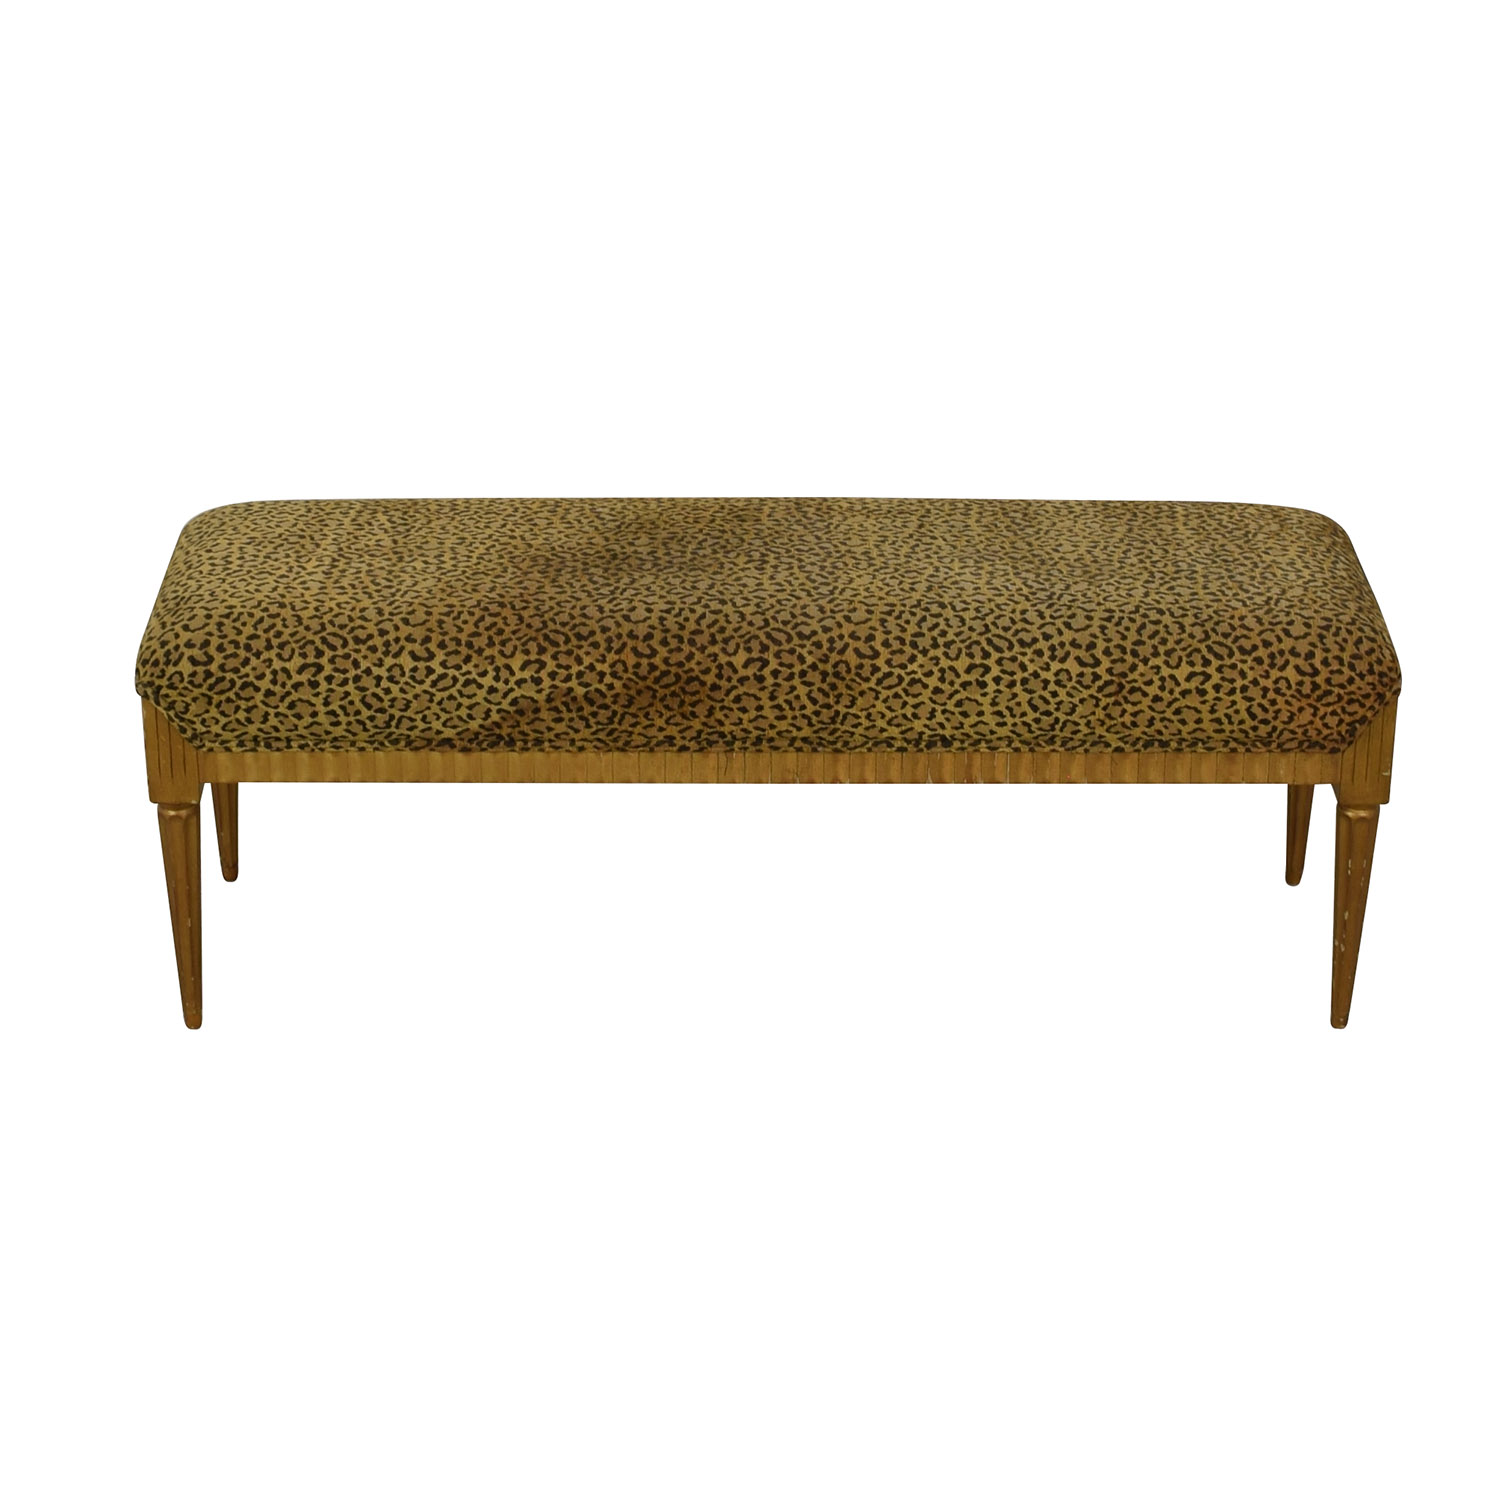 Furniture Masters Furniture Masters Leopard Print Bench dimensions